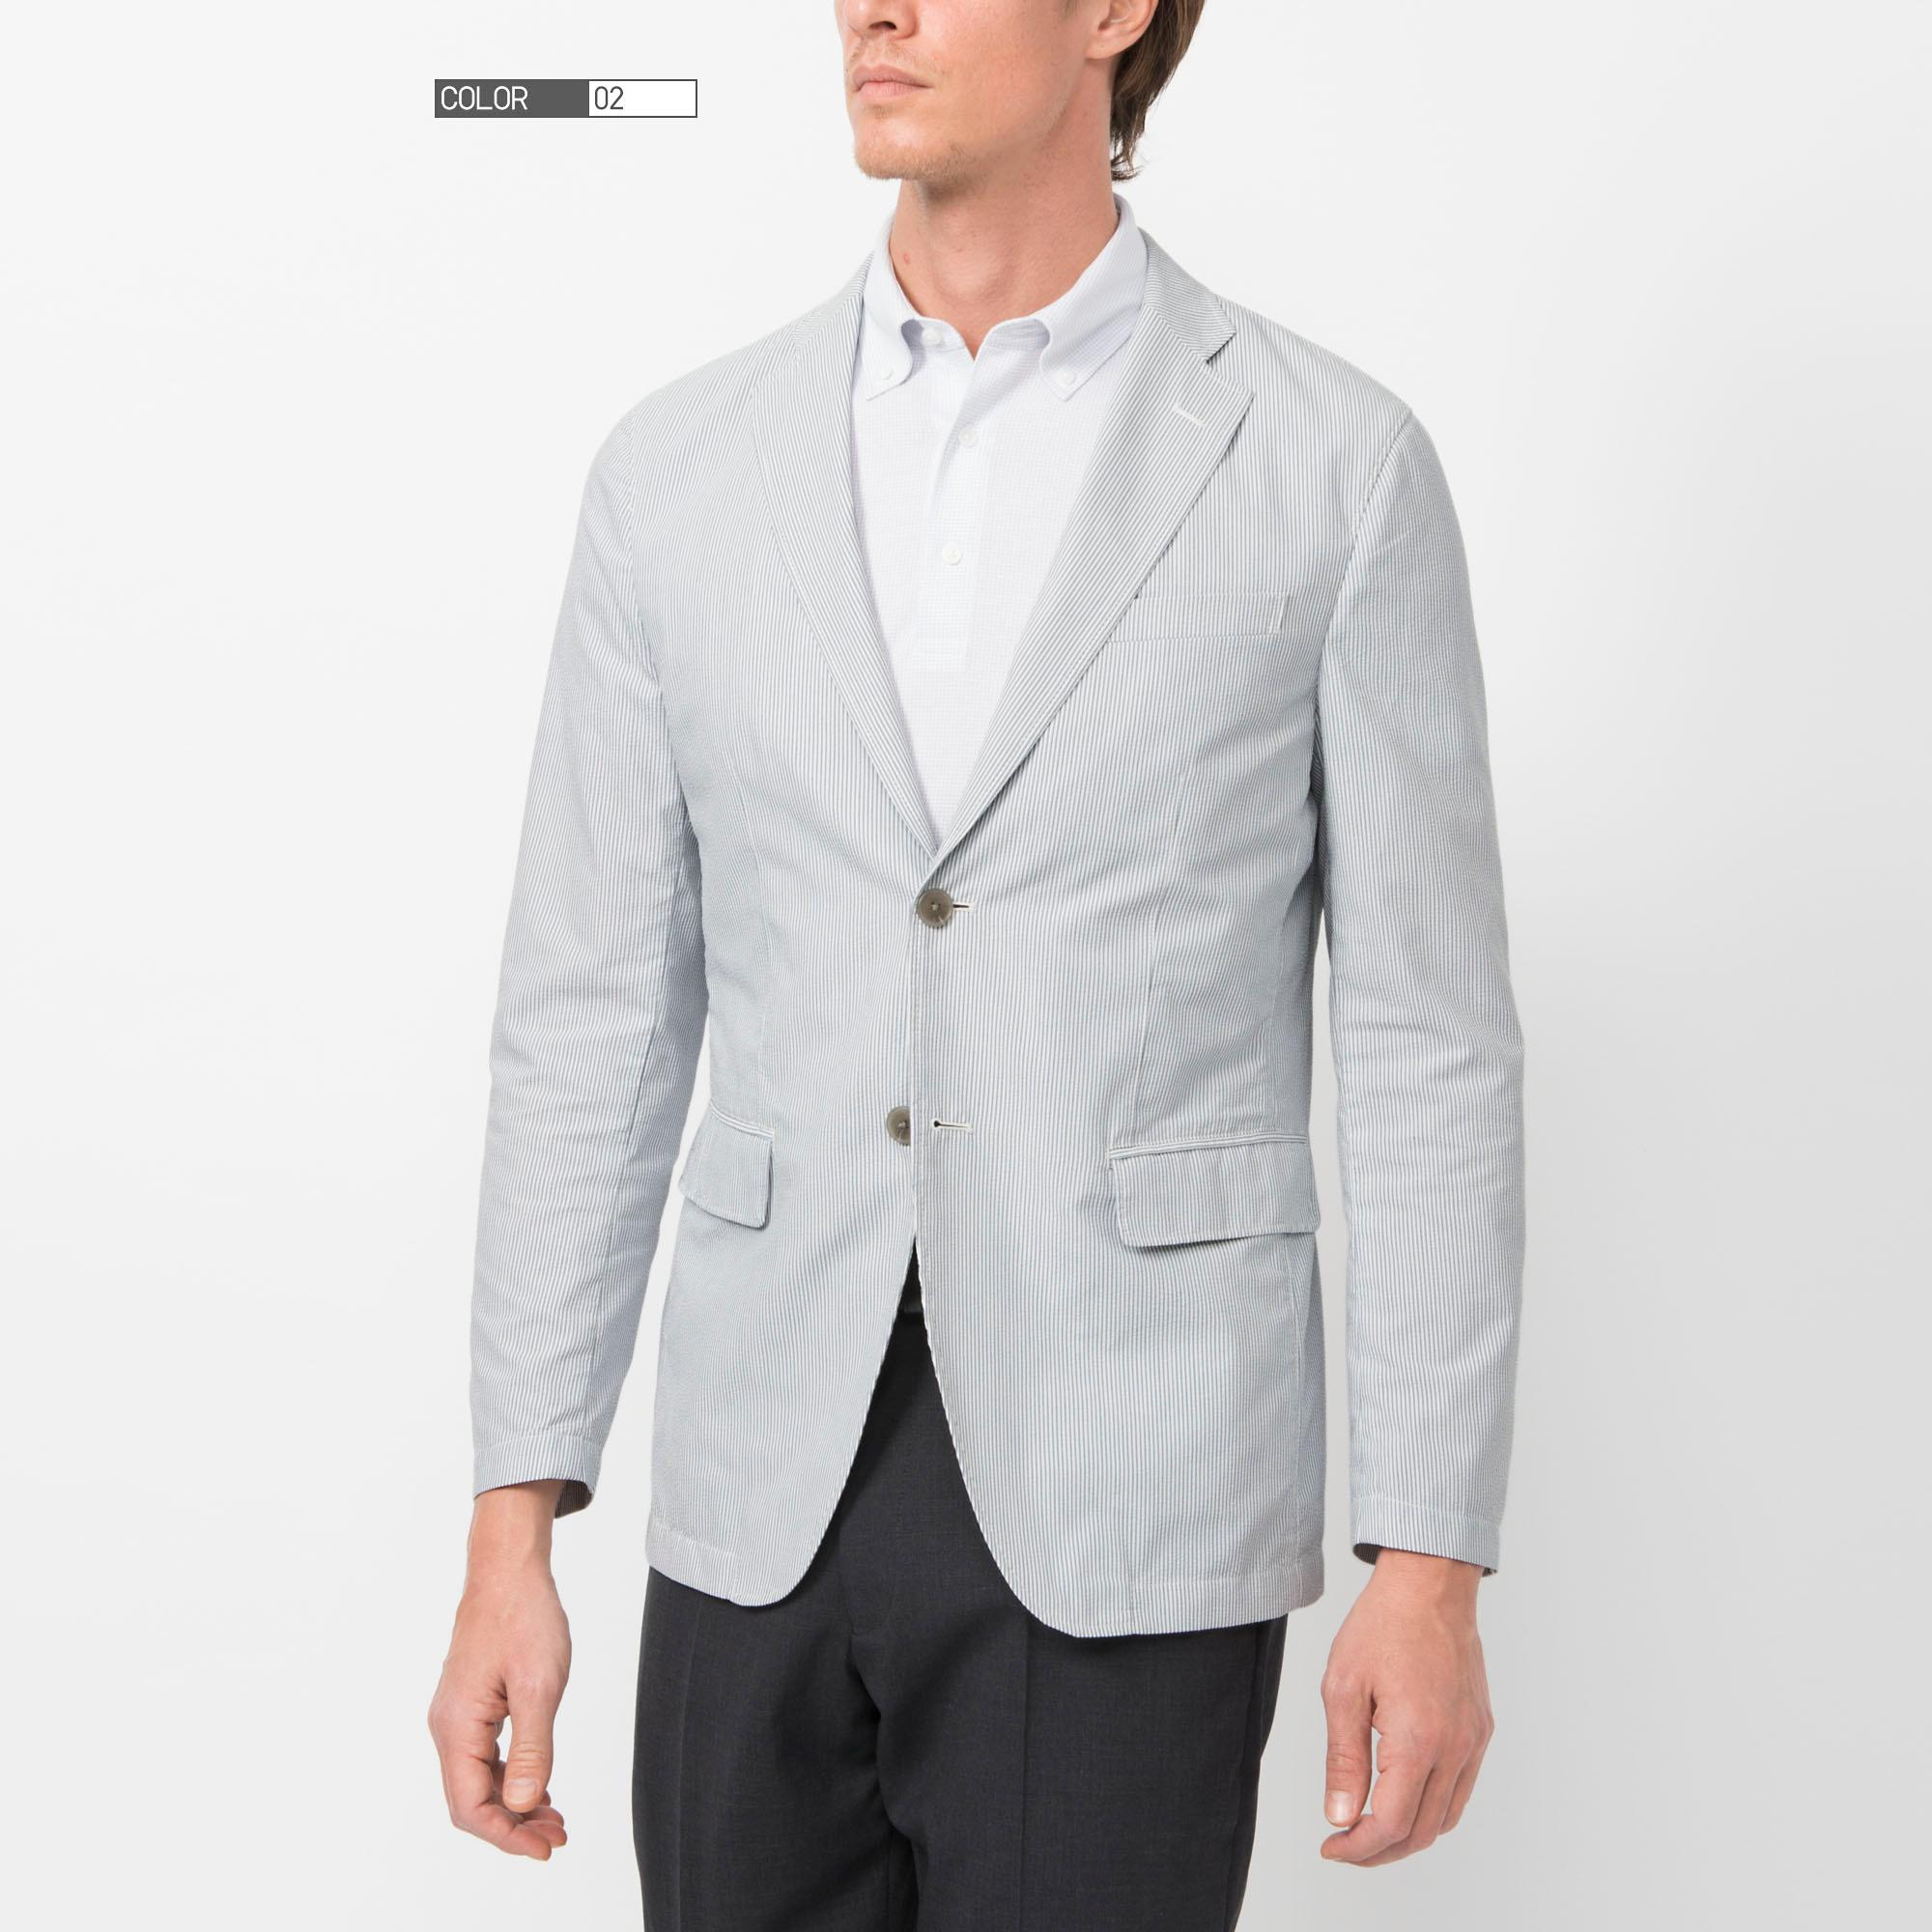 Men Dry Light Weight Jacket, $29.90 at  Uniqlo